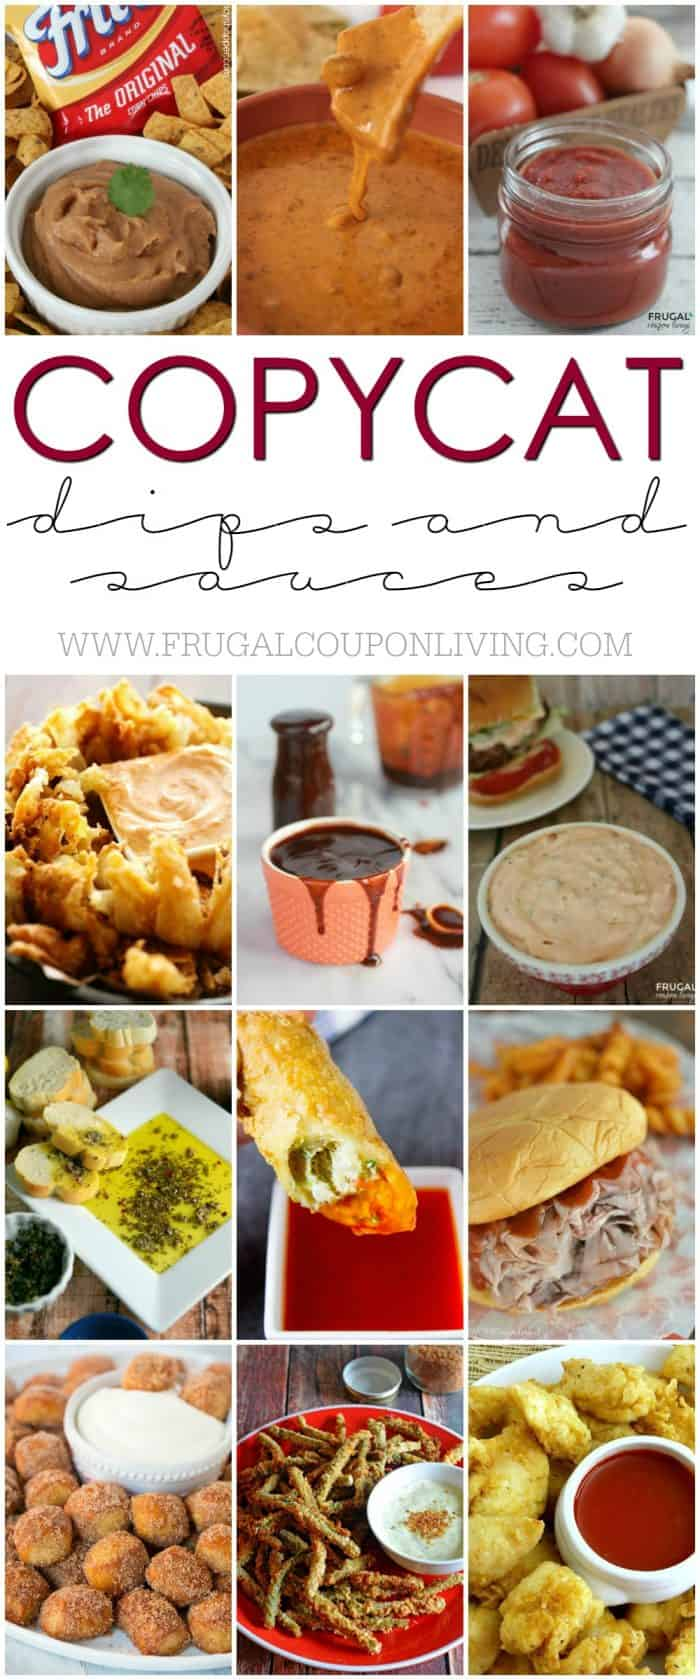 copycat-dips-sauces-frugal-coupon-living-long-collage